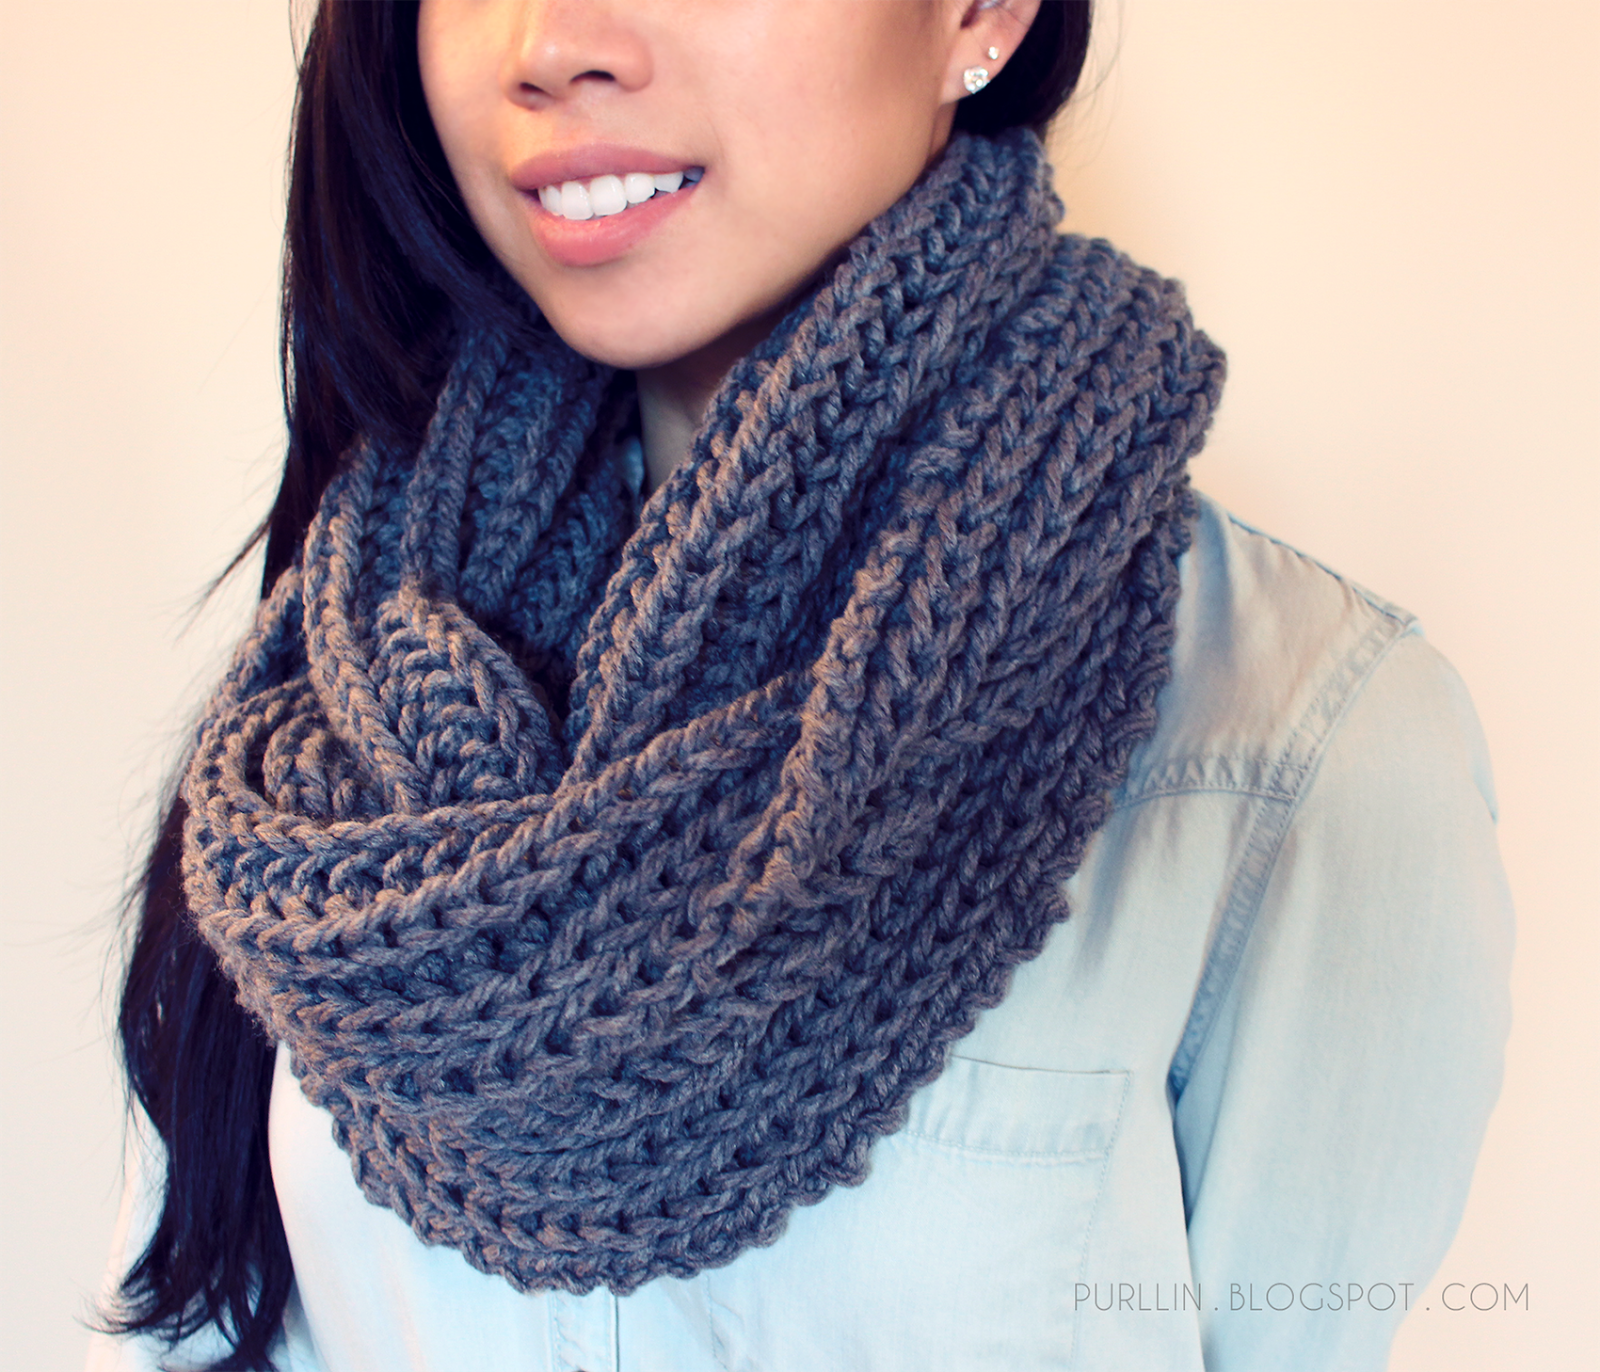 Scarf Knitting Pattern : november-infinity-circle-scarf-free-knitting-pattern-knit.png